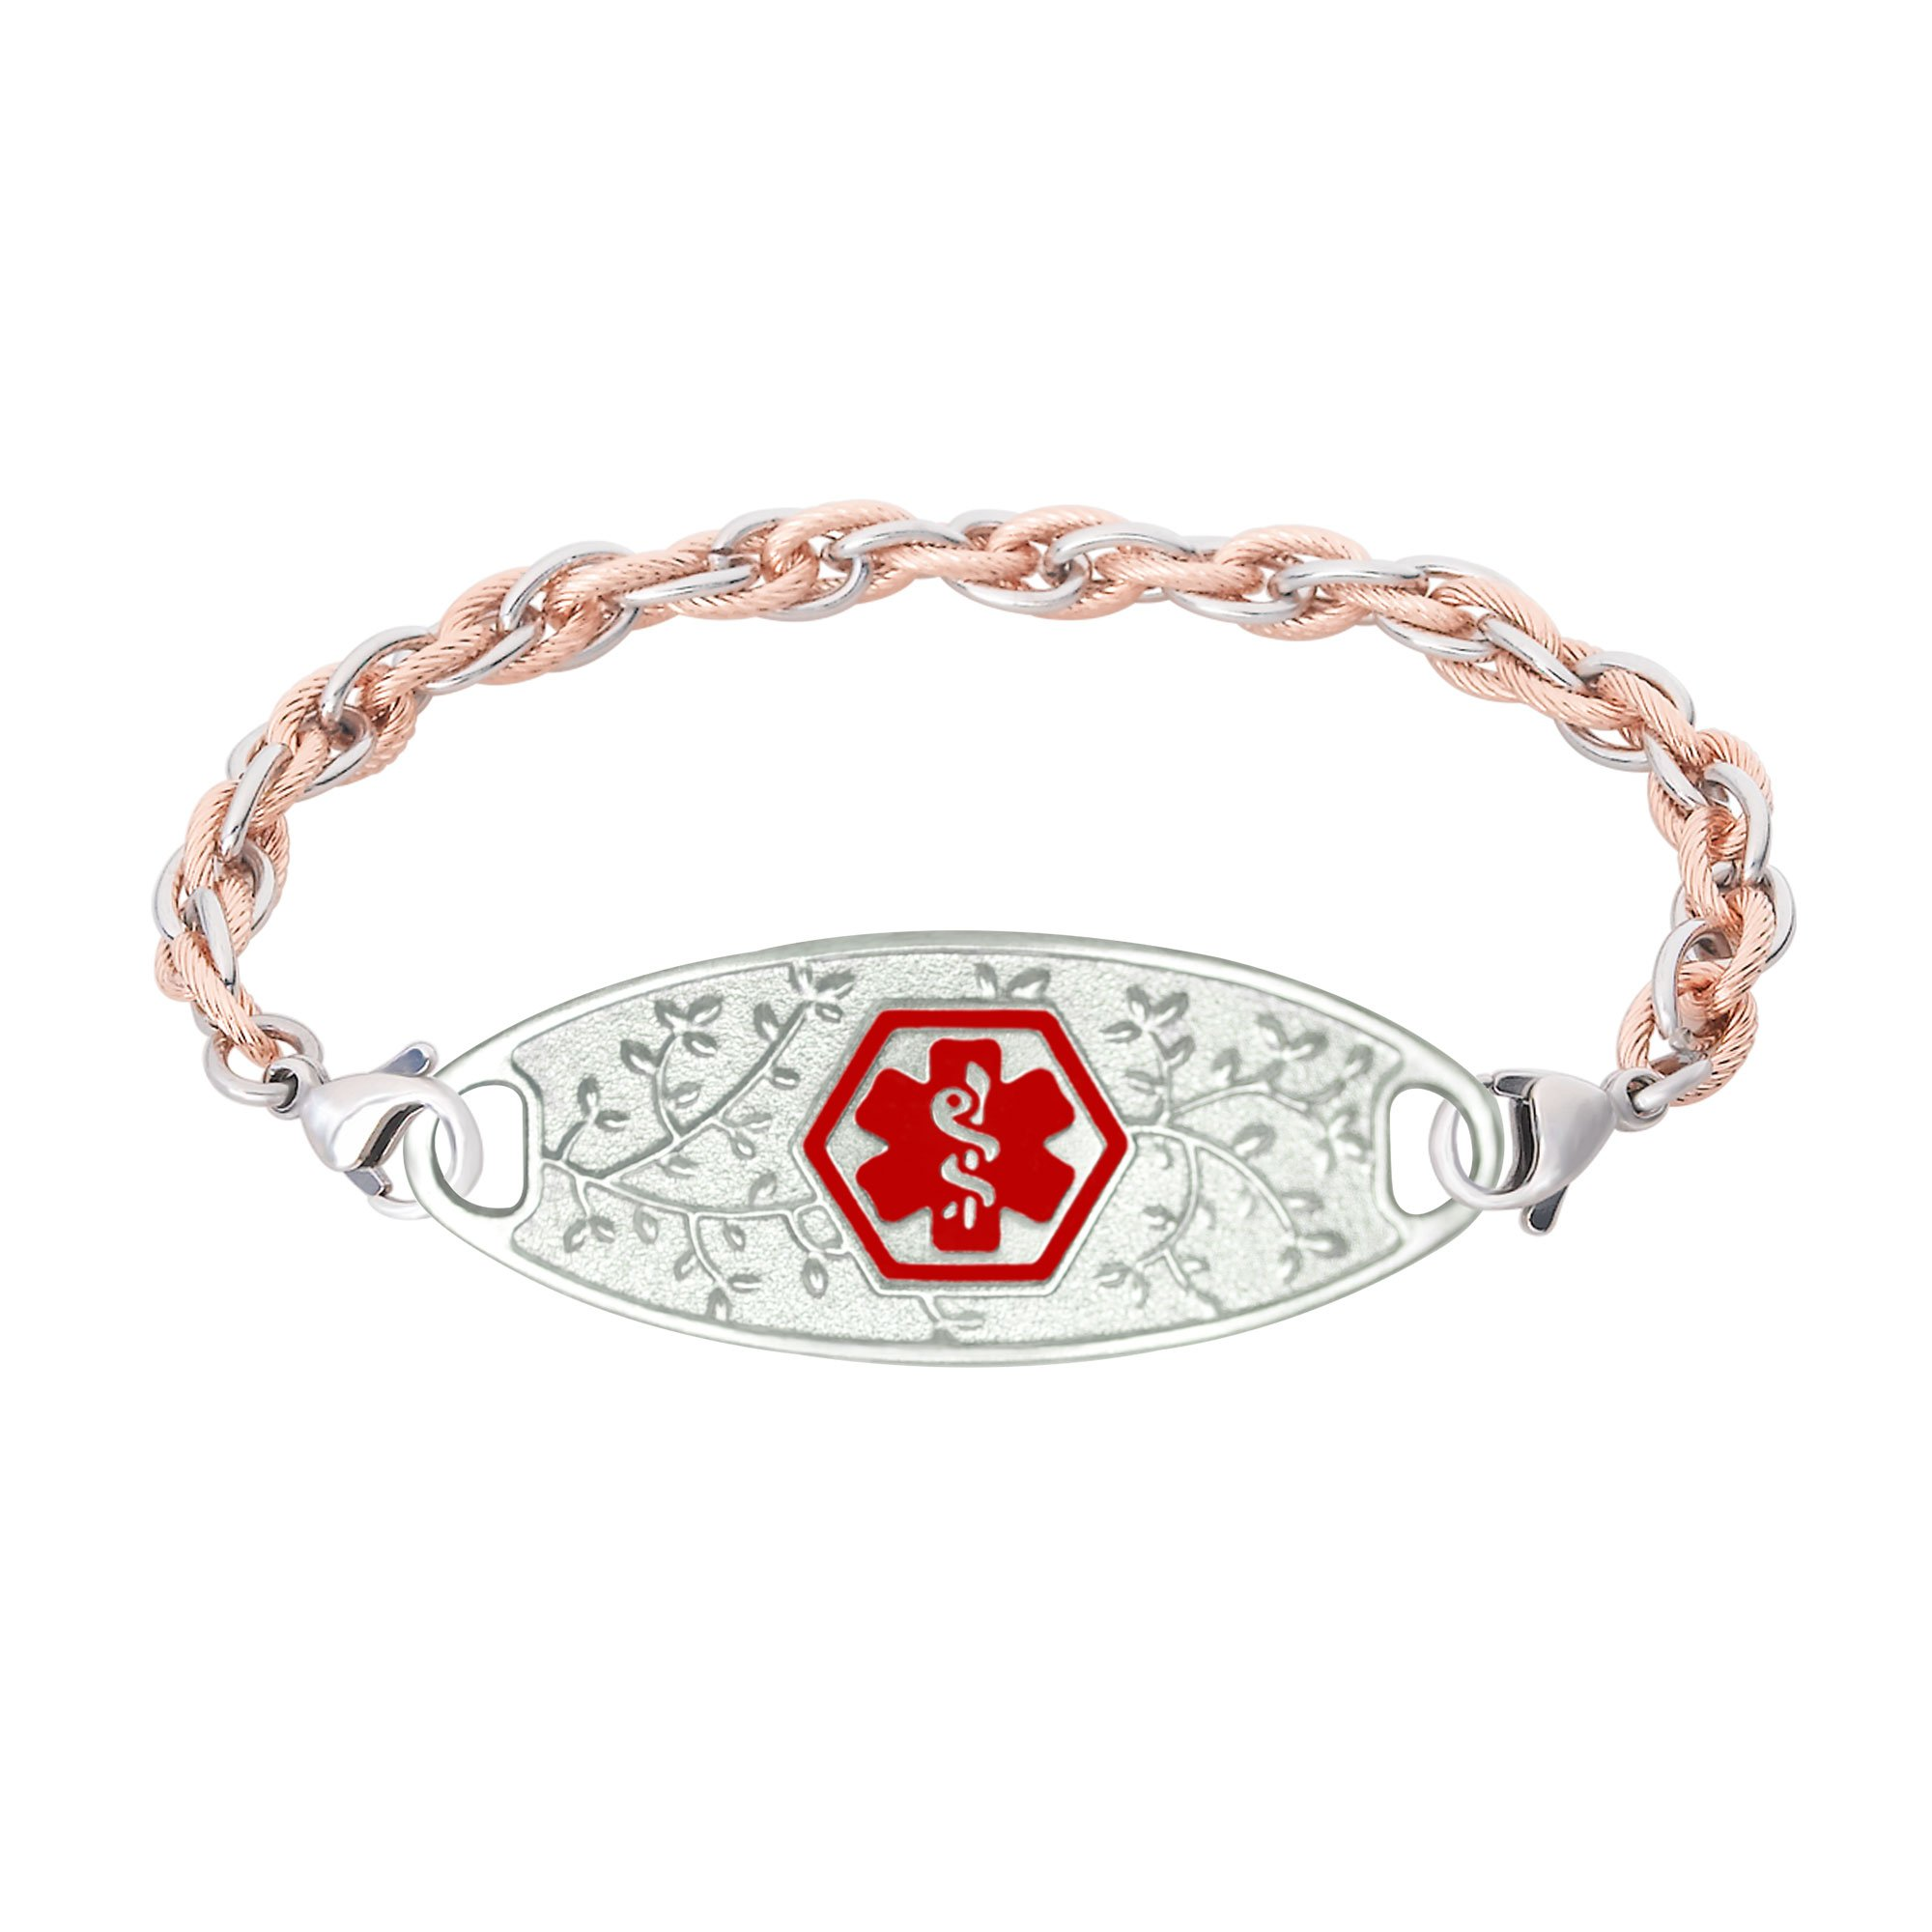 Divoti Custom Engraved 316L Beautiful Olive Medical Alert Bracelet for Women w/Stainless Inter-Mesh Rose Gold/Silver Chain -Red-8.0''